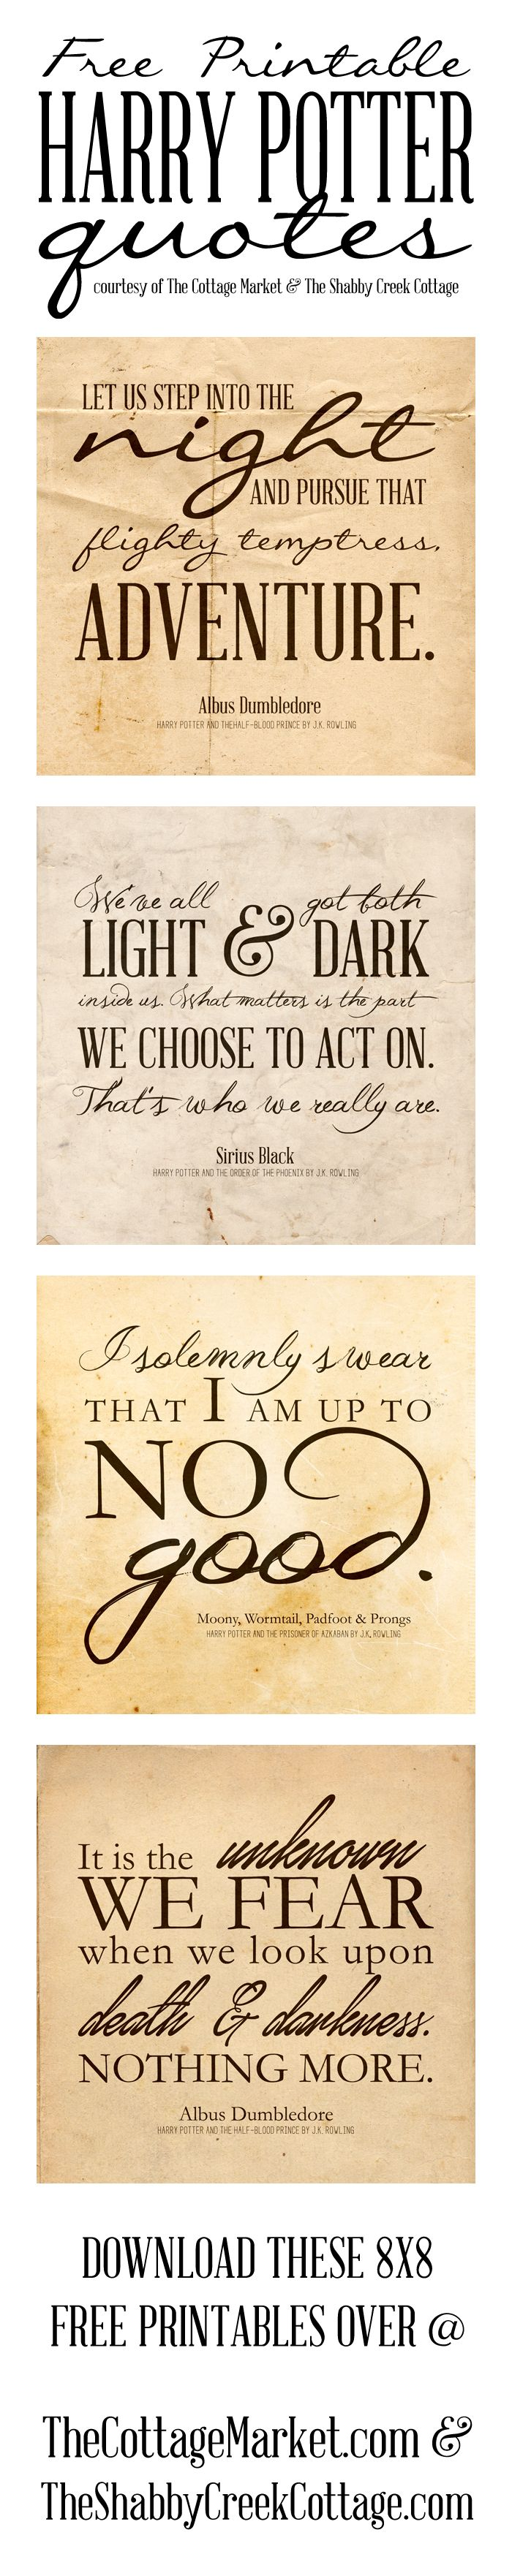 Free Printable Harry Potter Quotes courtesy of The Cottage Market and Shabby Creek Cottage